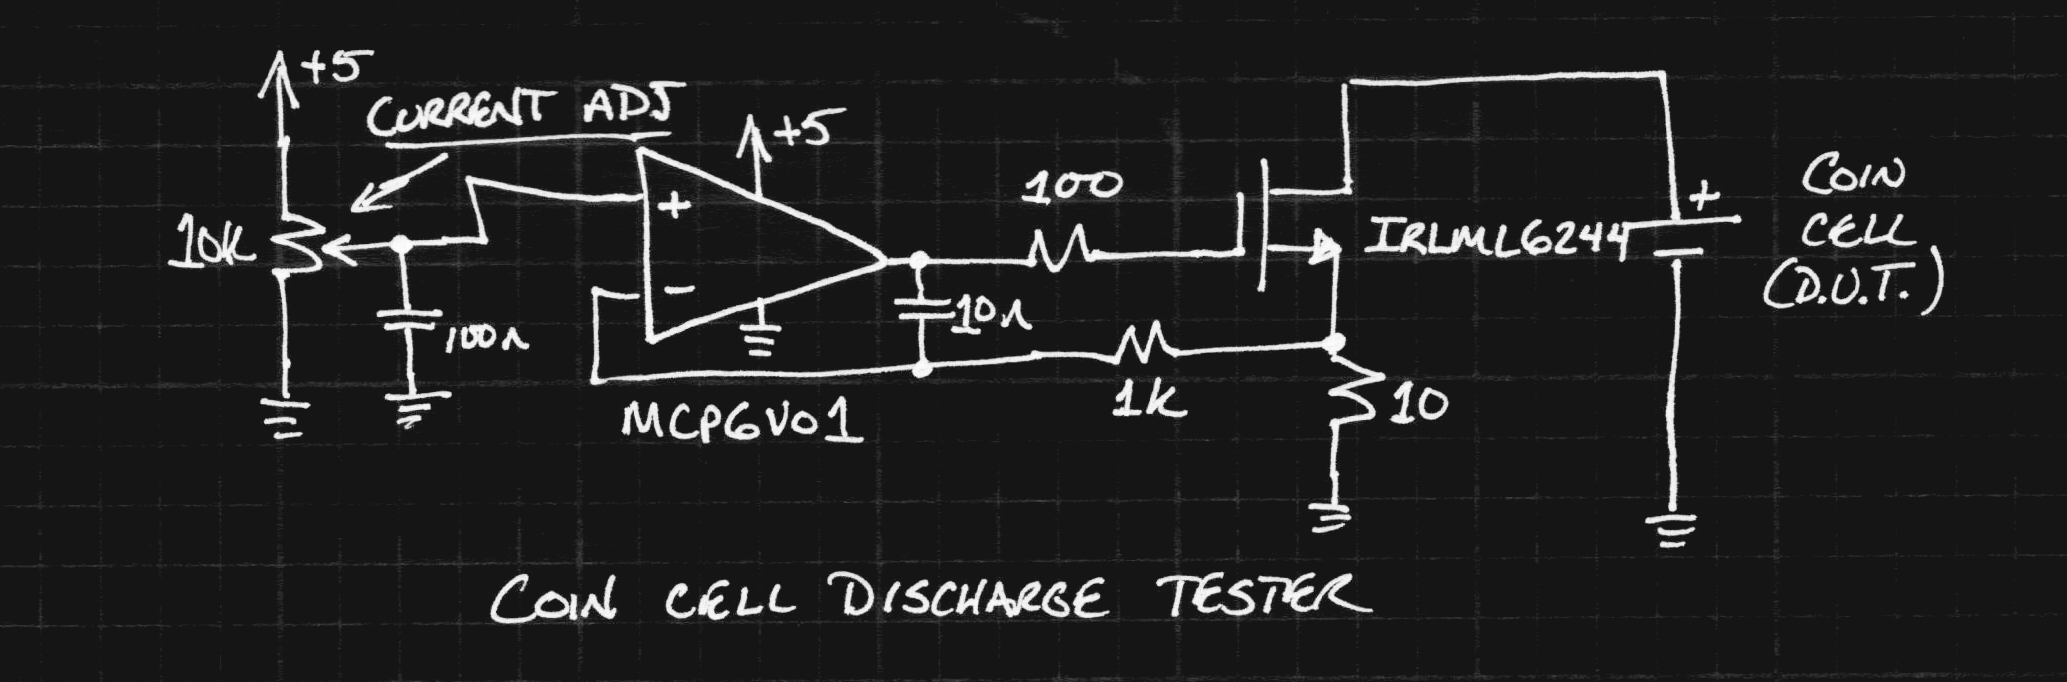 Coin Cell Discharge Tests Details Op Amp Voltage Offset Problem Electrical Engineering Stack The First Low I Found In Parts Bin Was An Mcp6v01 Chopper Its Overkill For This Application But Contributes A Ridiculously Small Error